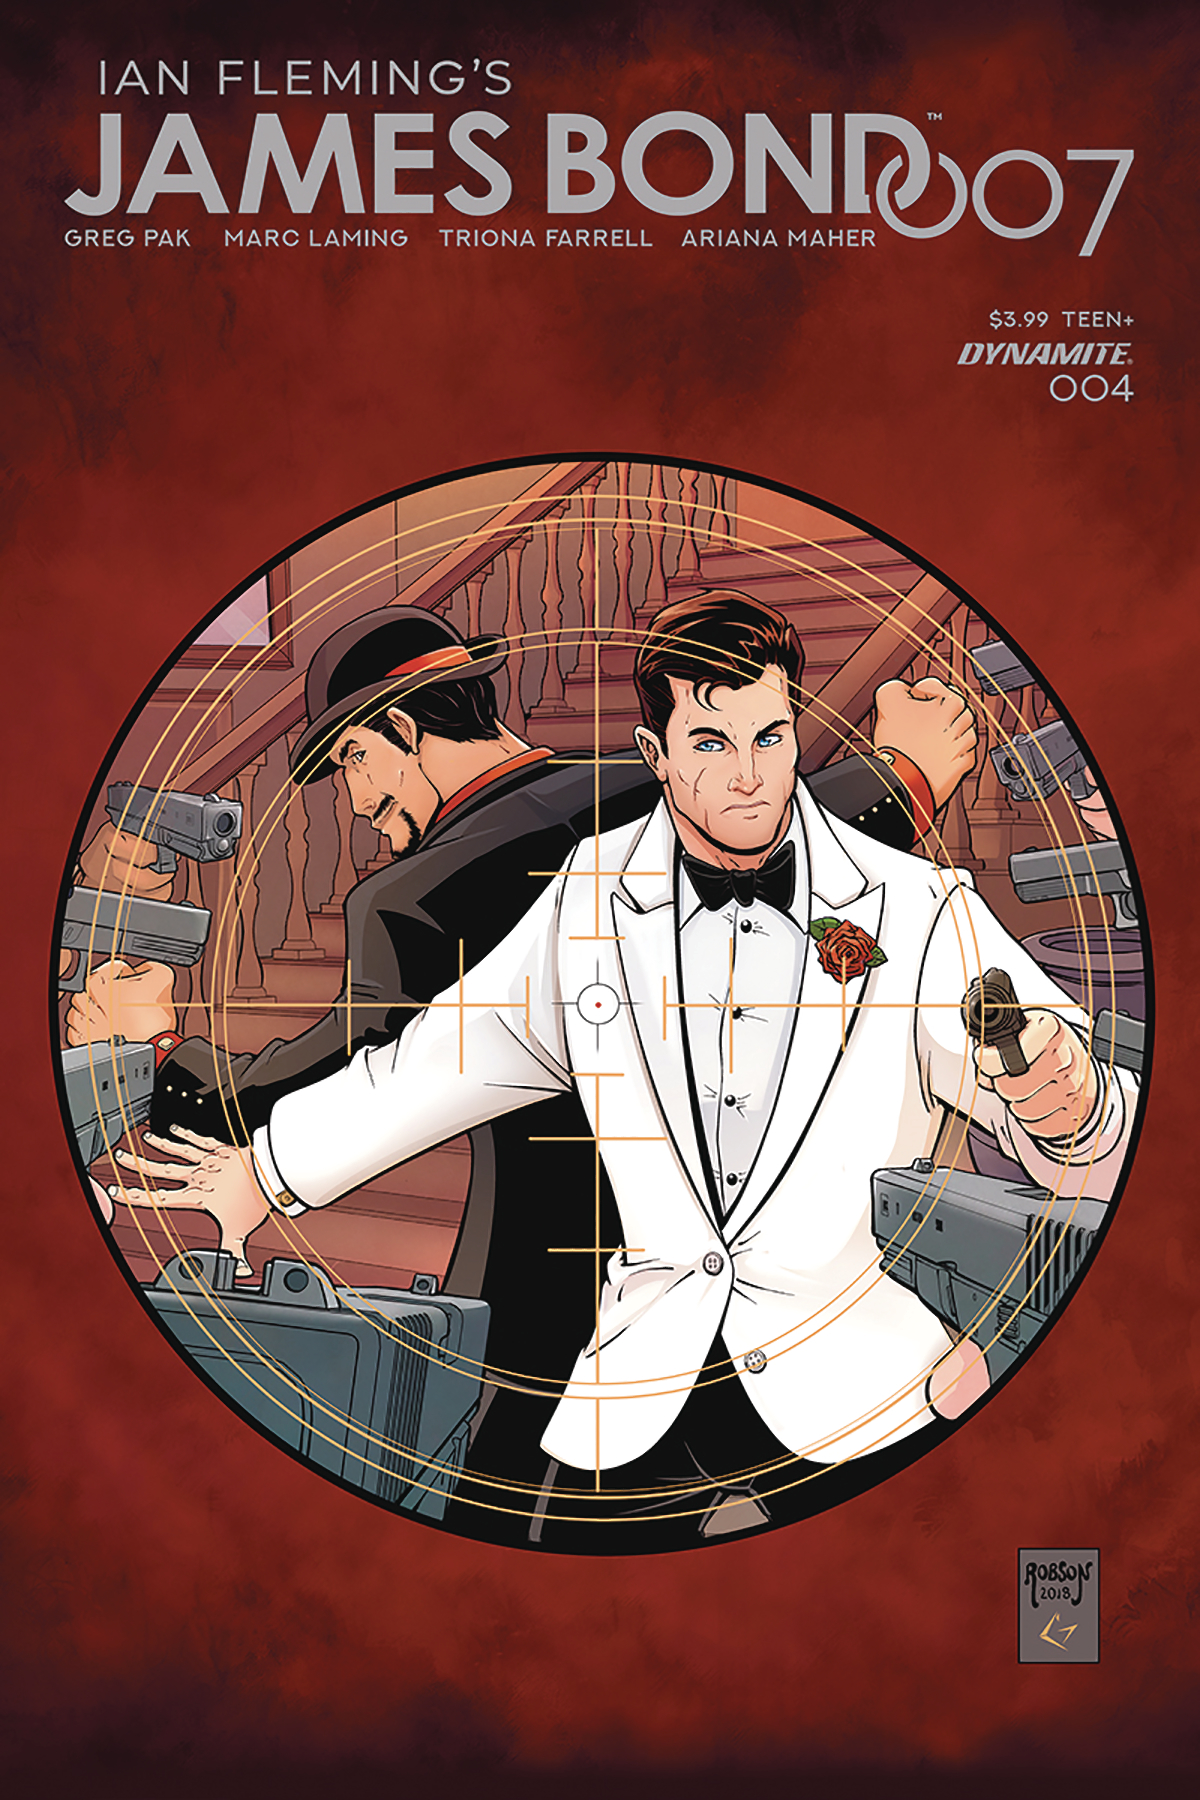 JAMES BOND 007 #4 CVR B ROBSON